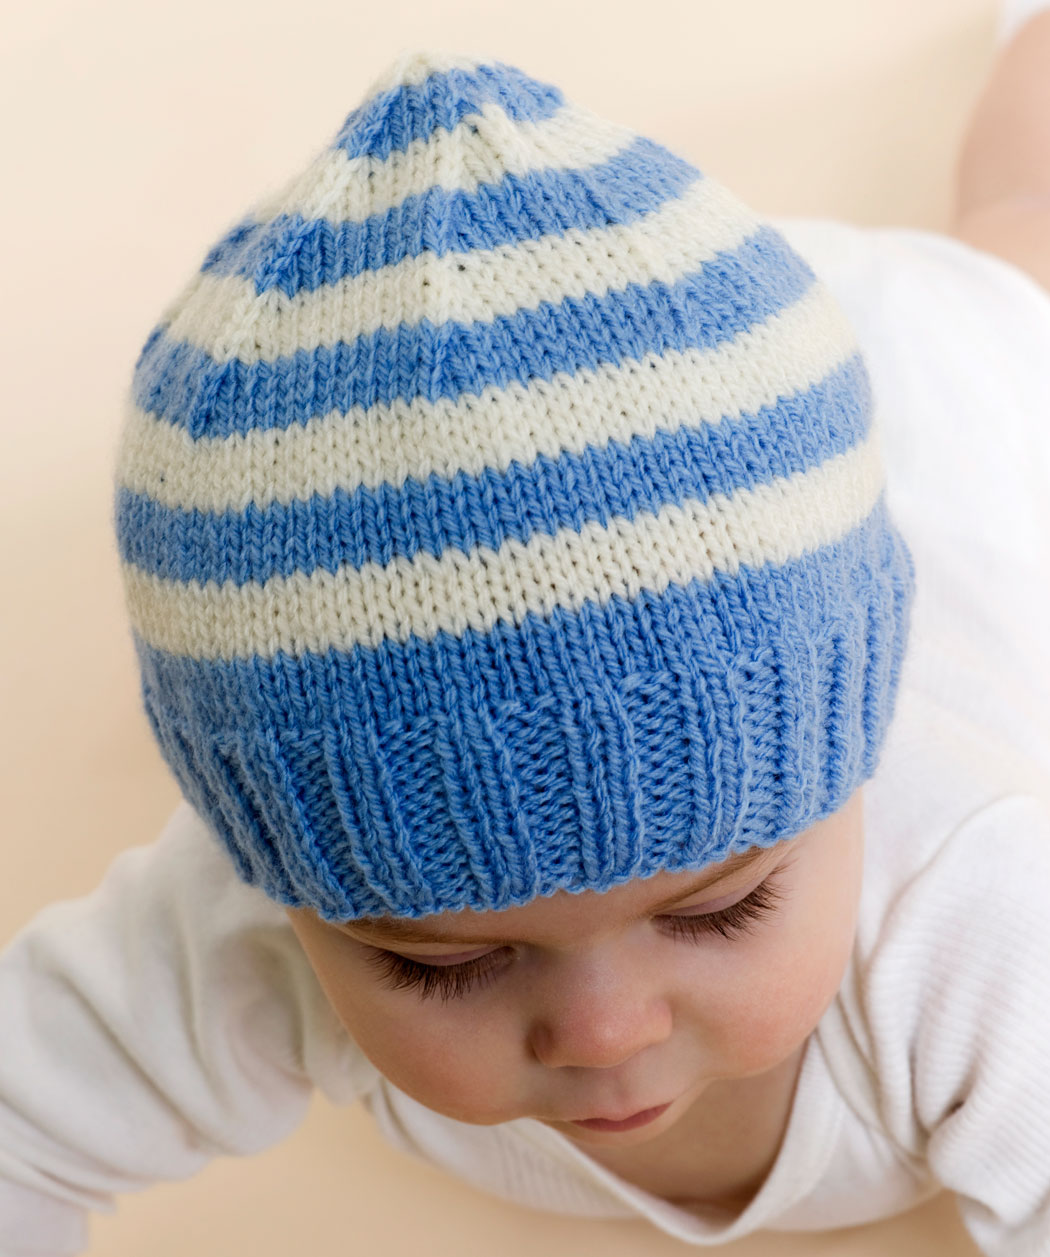 Simple Knit Hat Pattern Free : Knitting Hats   Tag Hats